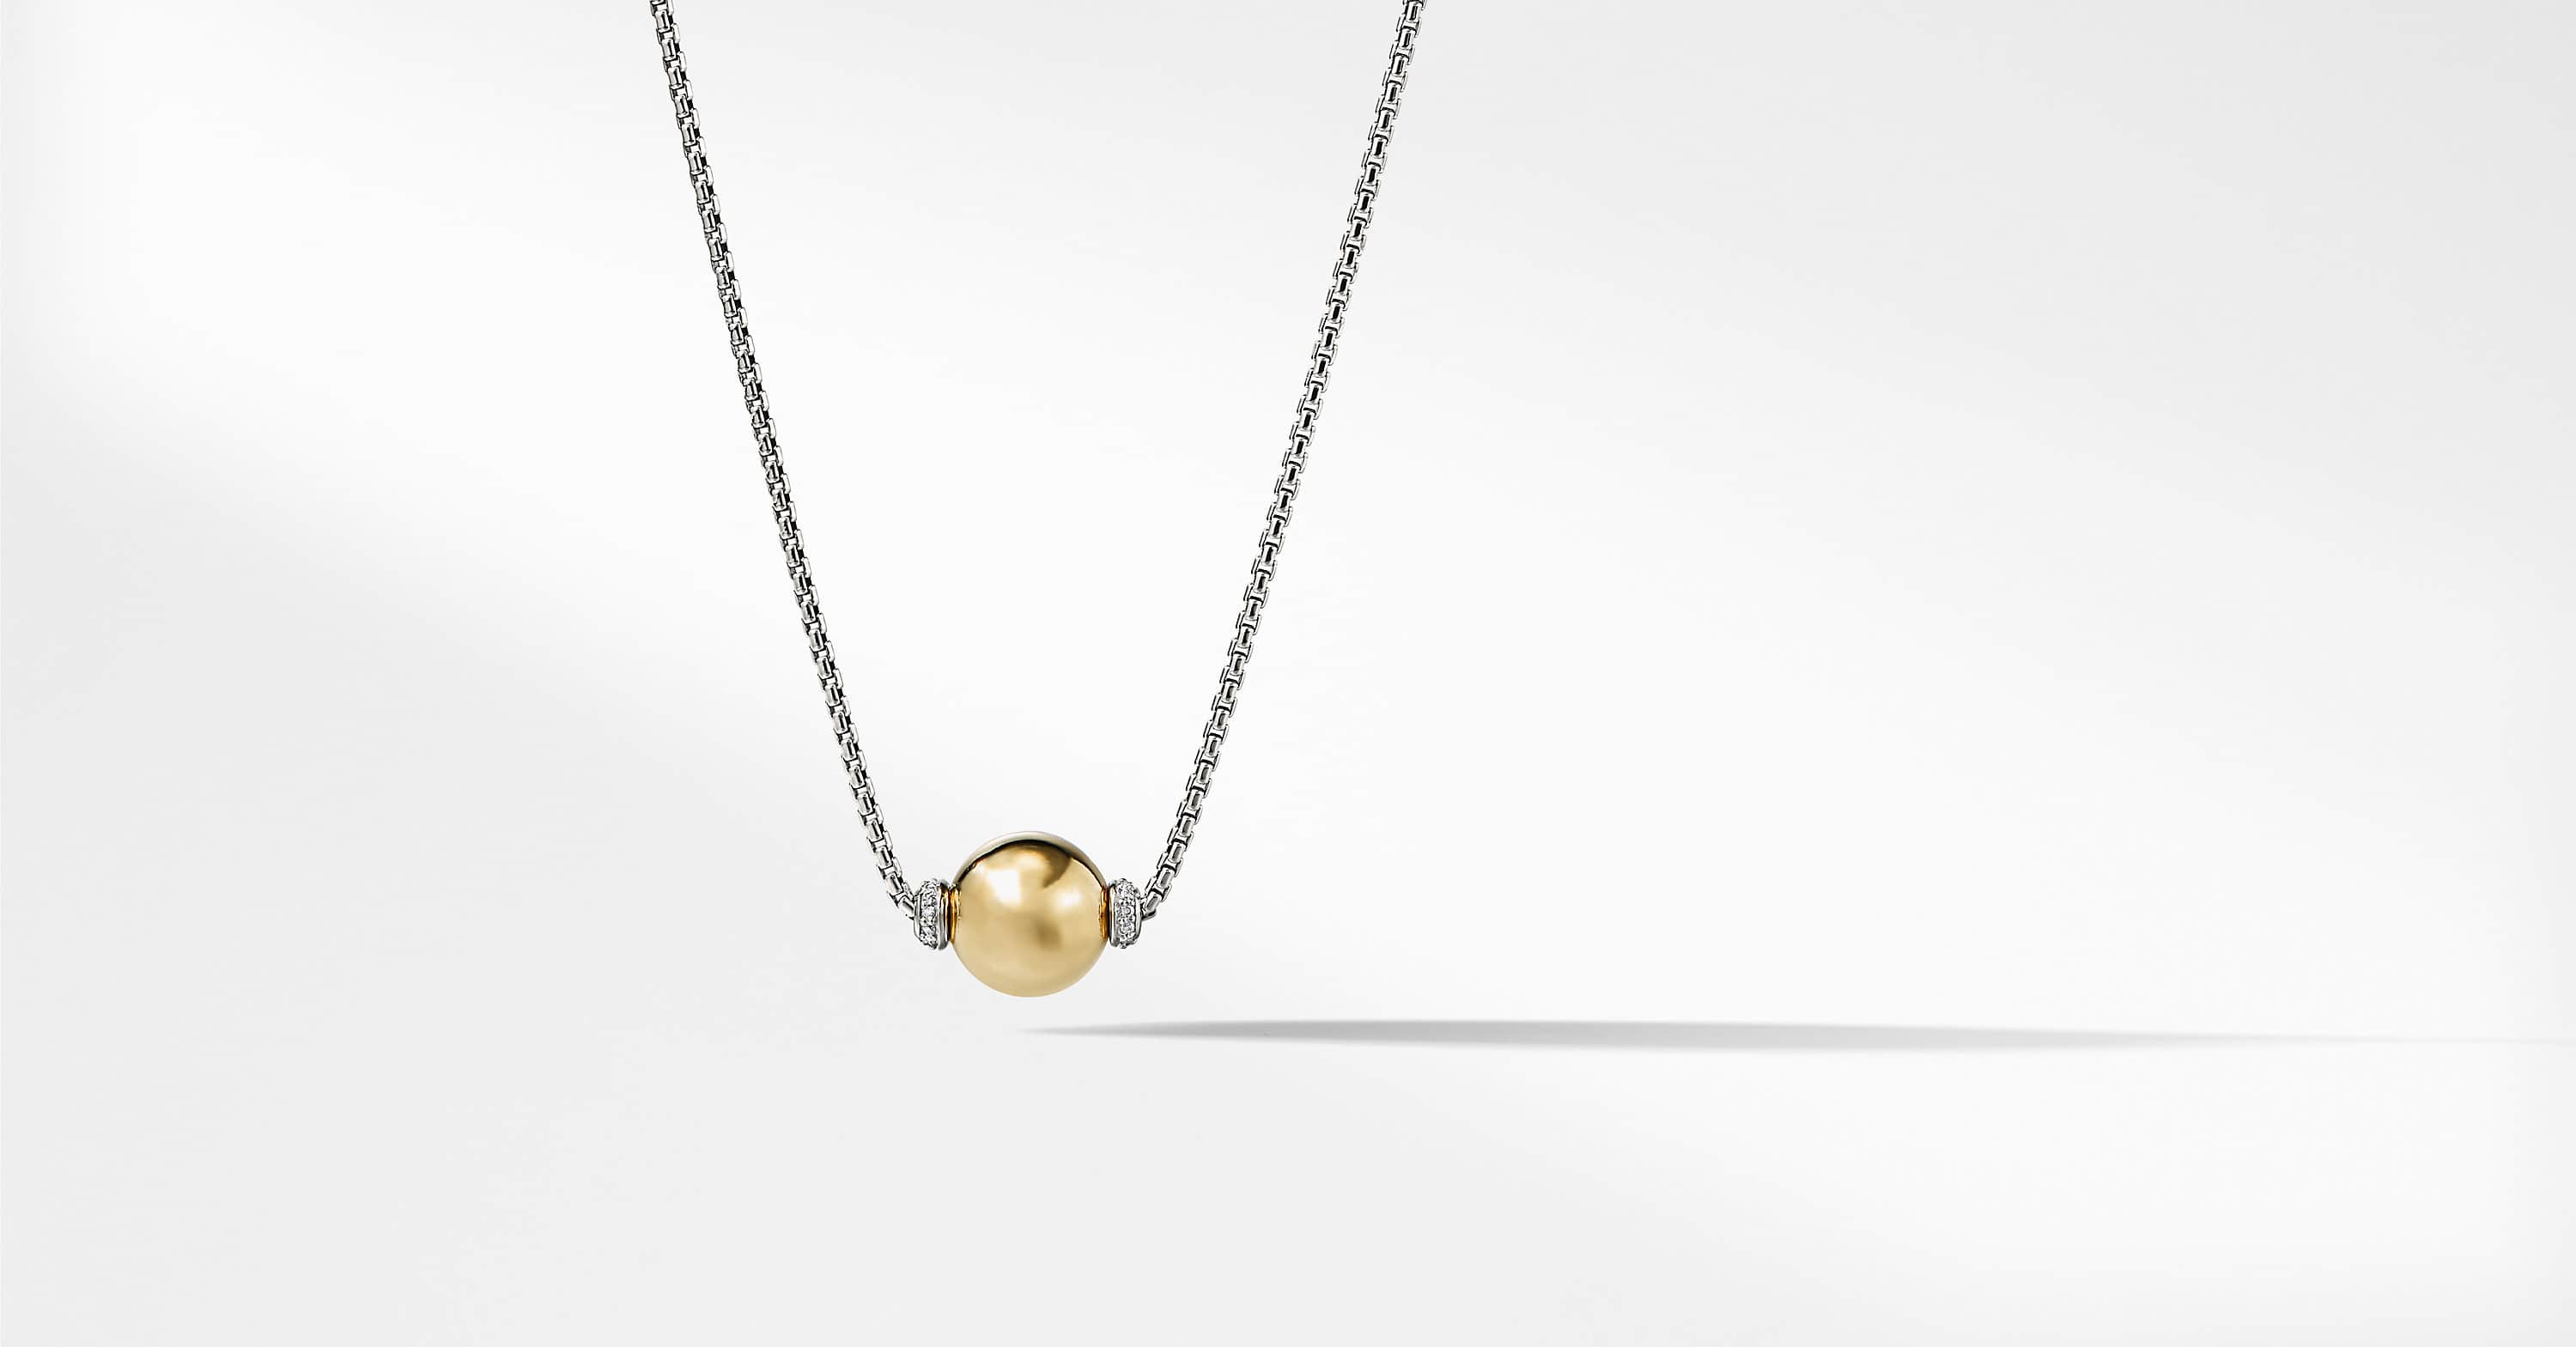 Solari Pendant Necklace with Diamonds and 18K Gold